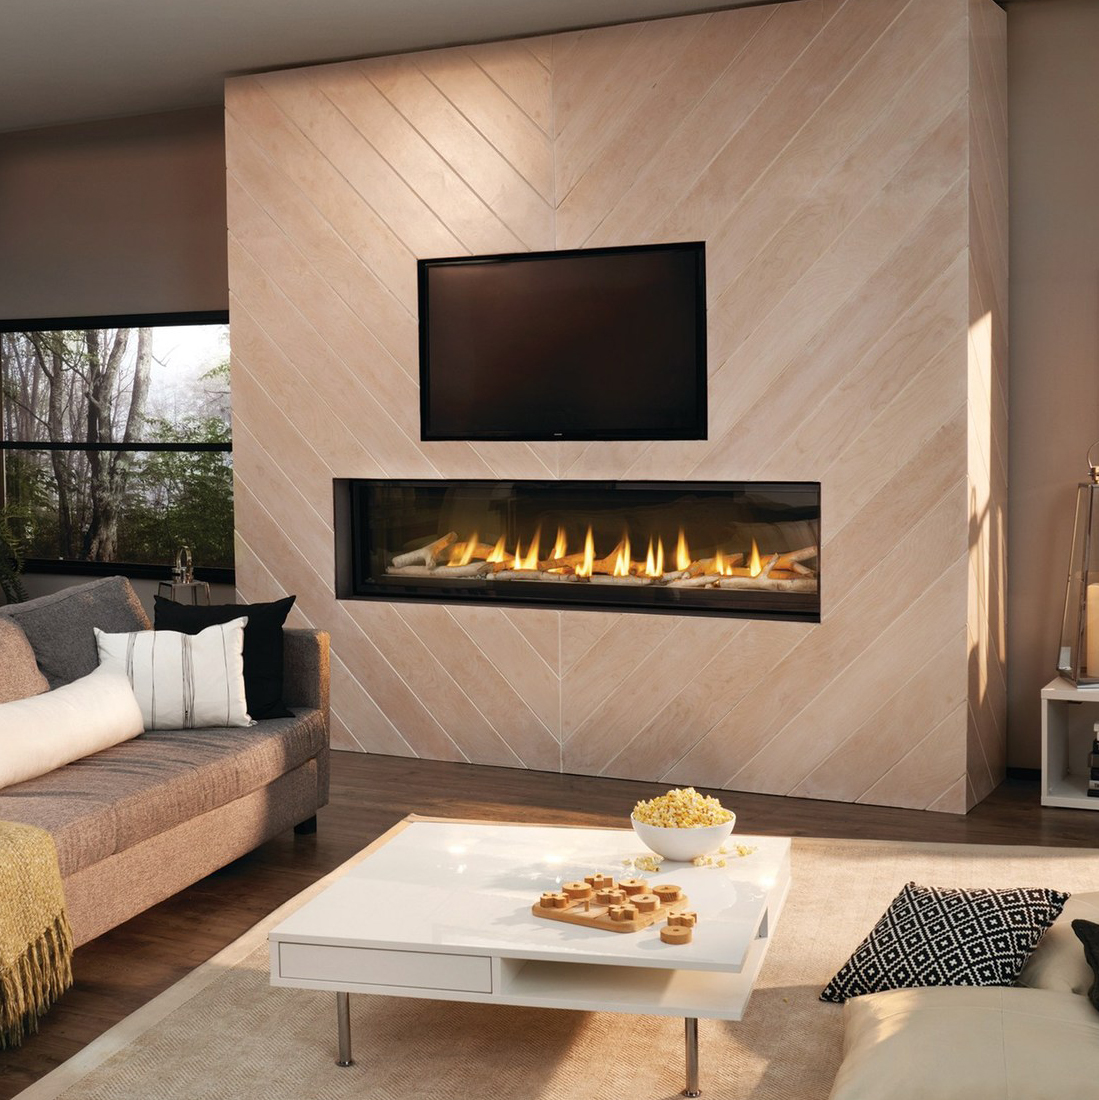 fireplace look gas a mr above your you hng fireplaces refined gasfp can primo also safely designer hang the clean create for space right with television artwork linear or perfect